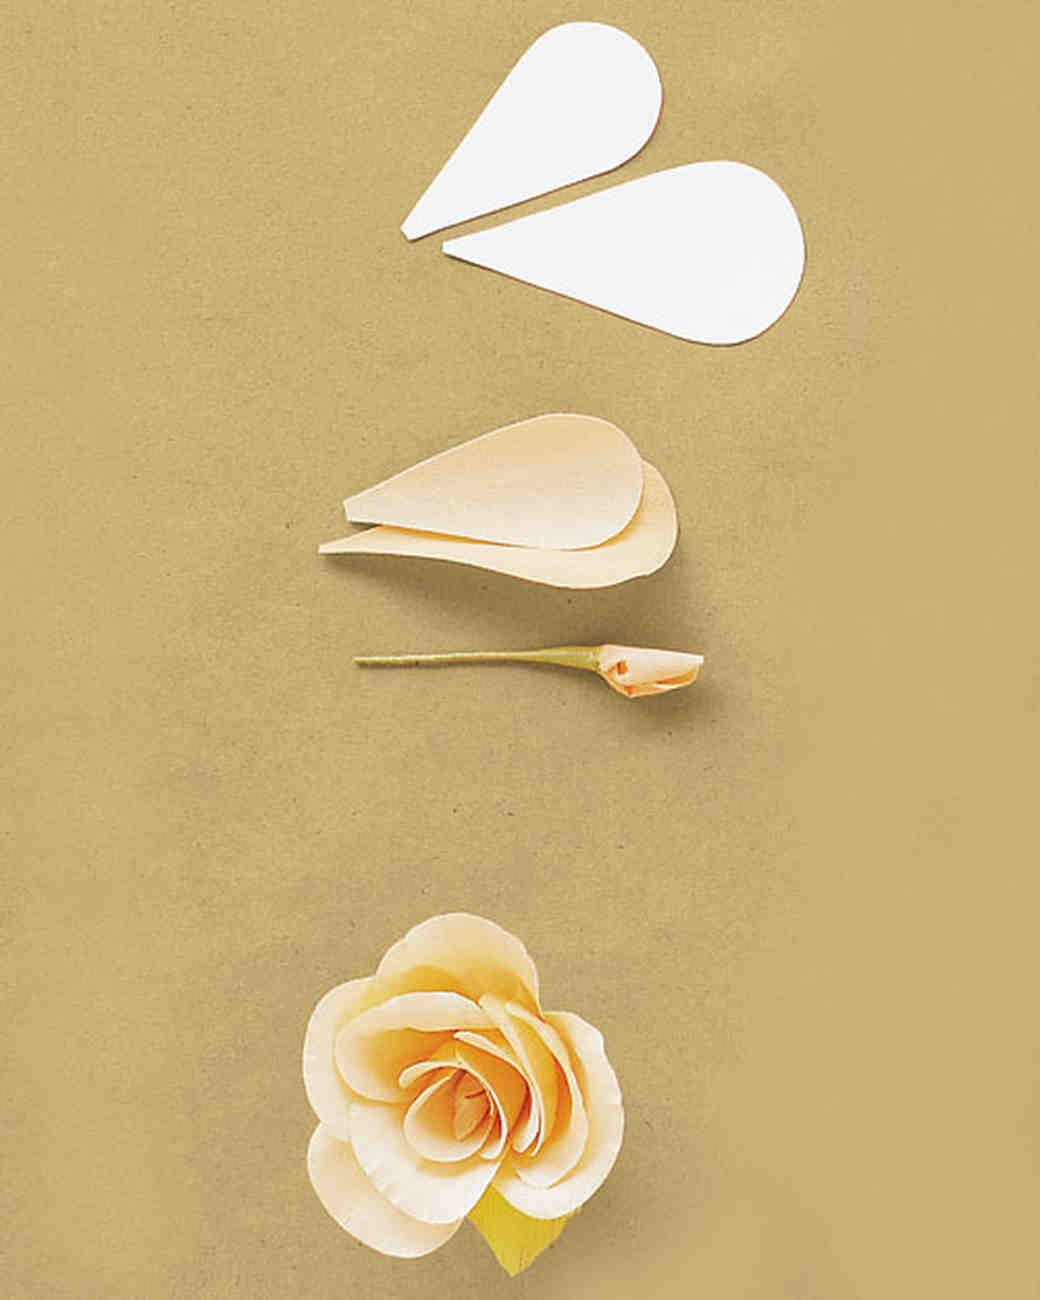 How To Make Crepe Paper Flowers Pinterest